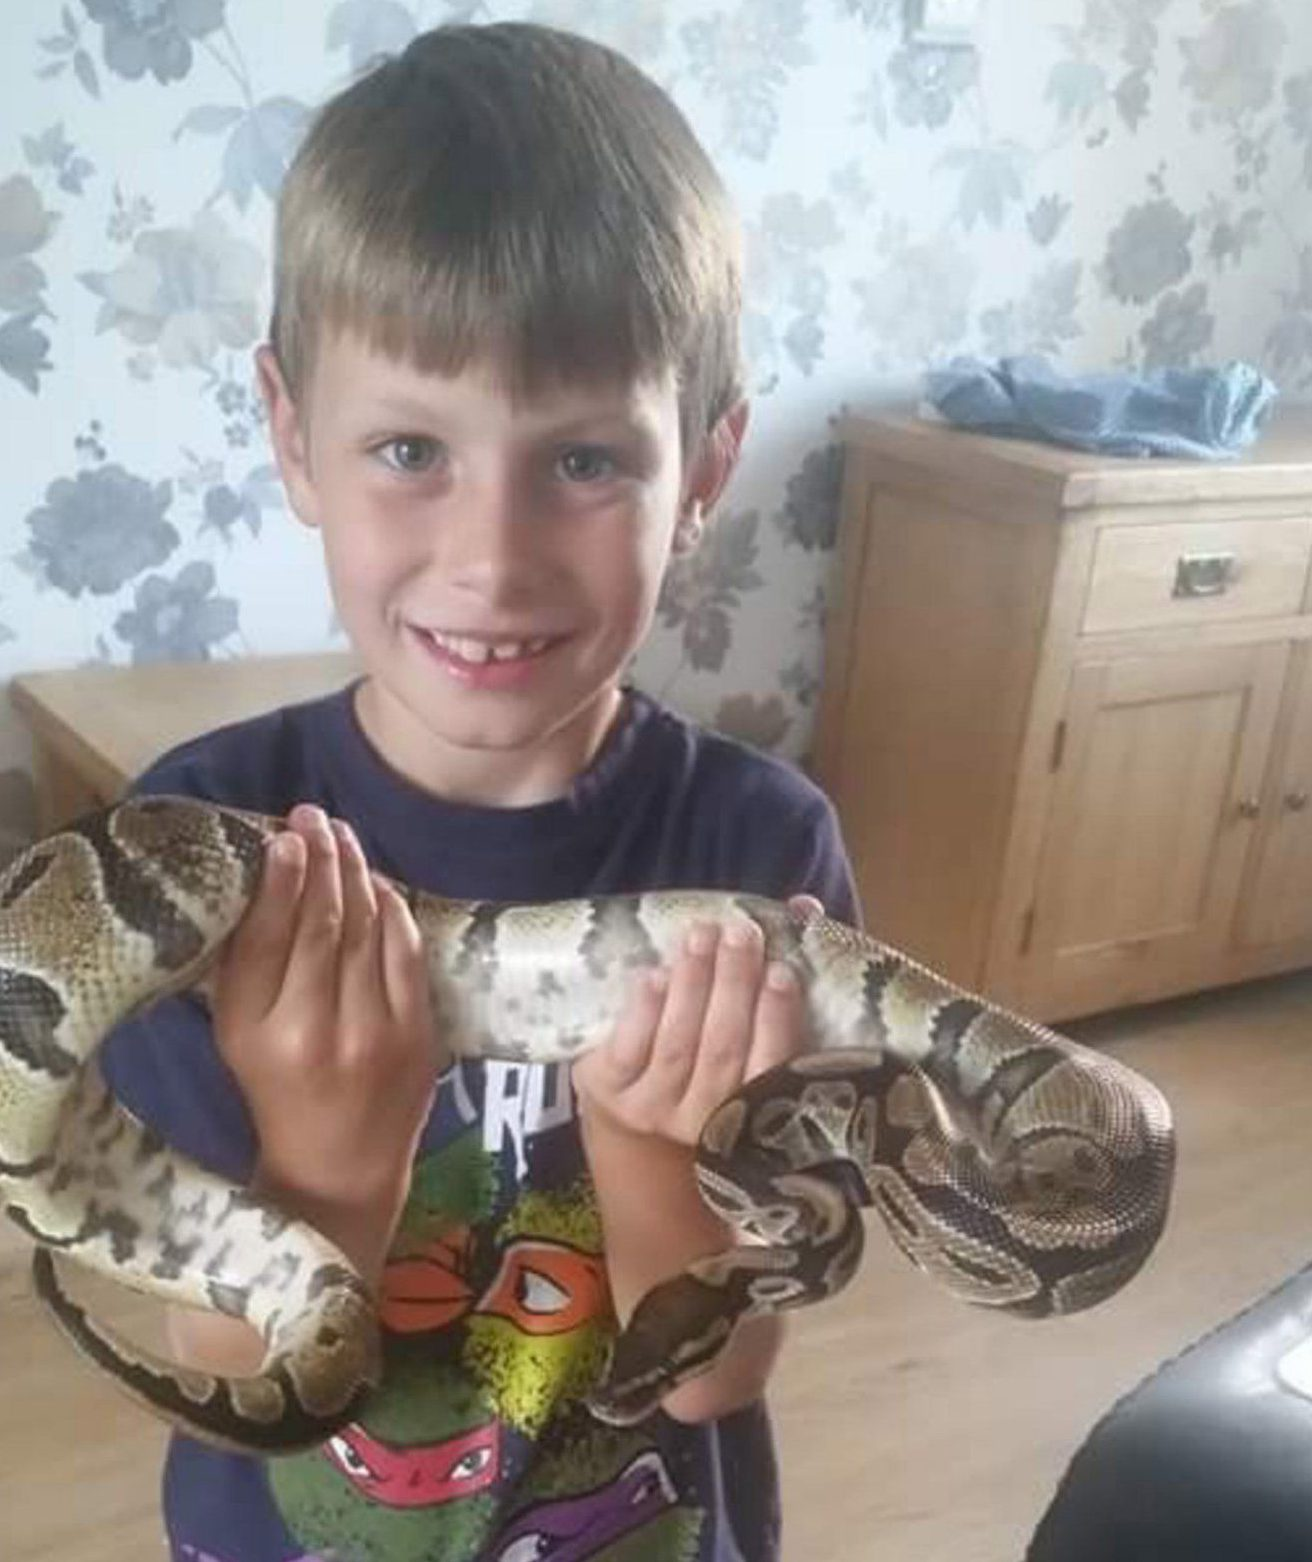 Undated family handout photo of Callum Cartlidge who died after a fatal collapse at his home in Redditch, paramedics trying to save his life asked if he could be taken to a hospital three minutes away but were told it was not properly equipped, an inquest heard. PRESS ASSOCIATION Photo. Issue date: Wednesday May 2, 2018. Callum Cartlidge, described as a friendly, smiley child, died after suffering a cardiac arrest as a result of a rare and undiagnosed condition at his home in Redditch, Worcestershire, on March 3, 2017. See PA story INQUEST Cartlidge. Photo credit should read: Family handout/PA Wire NOTE TO EDITORS: This handout photo may only be used in for editorial reporting purposes for the contemporaneous illustration of events, things or the people in the image or facts mentioned in the caption. Reuse of the picture may require further permission from the copyright holder.